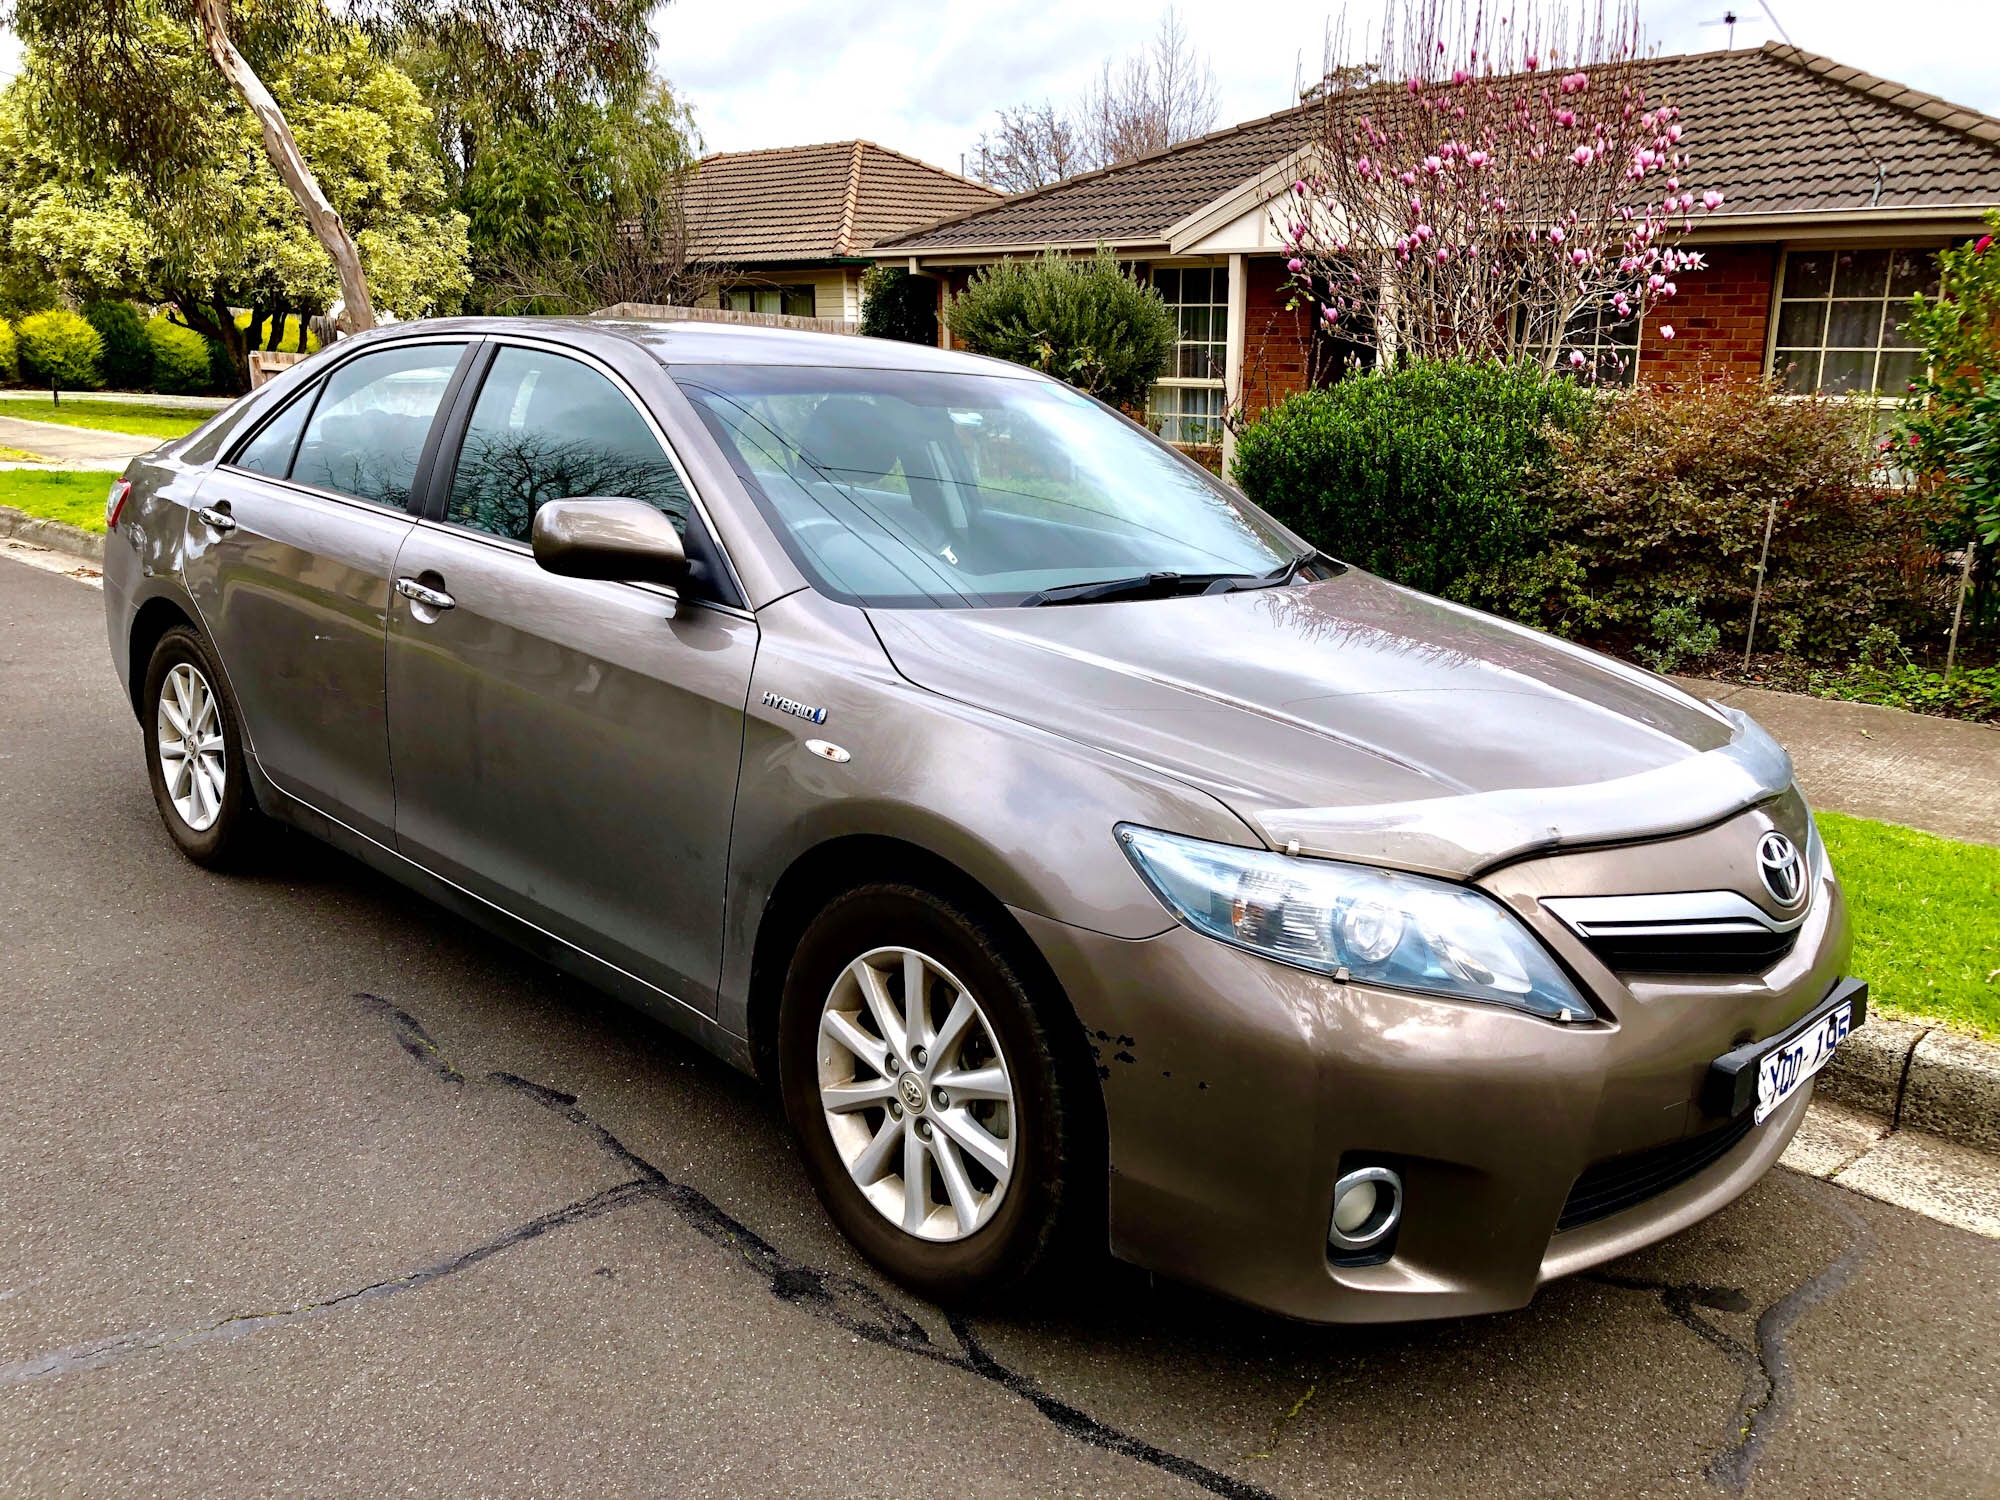 Picture of Mohit's 2011 Toyota Camry